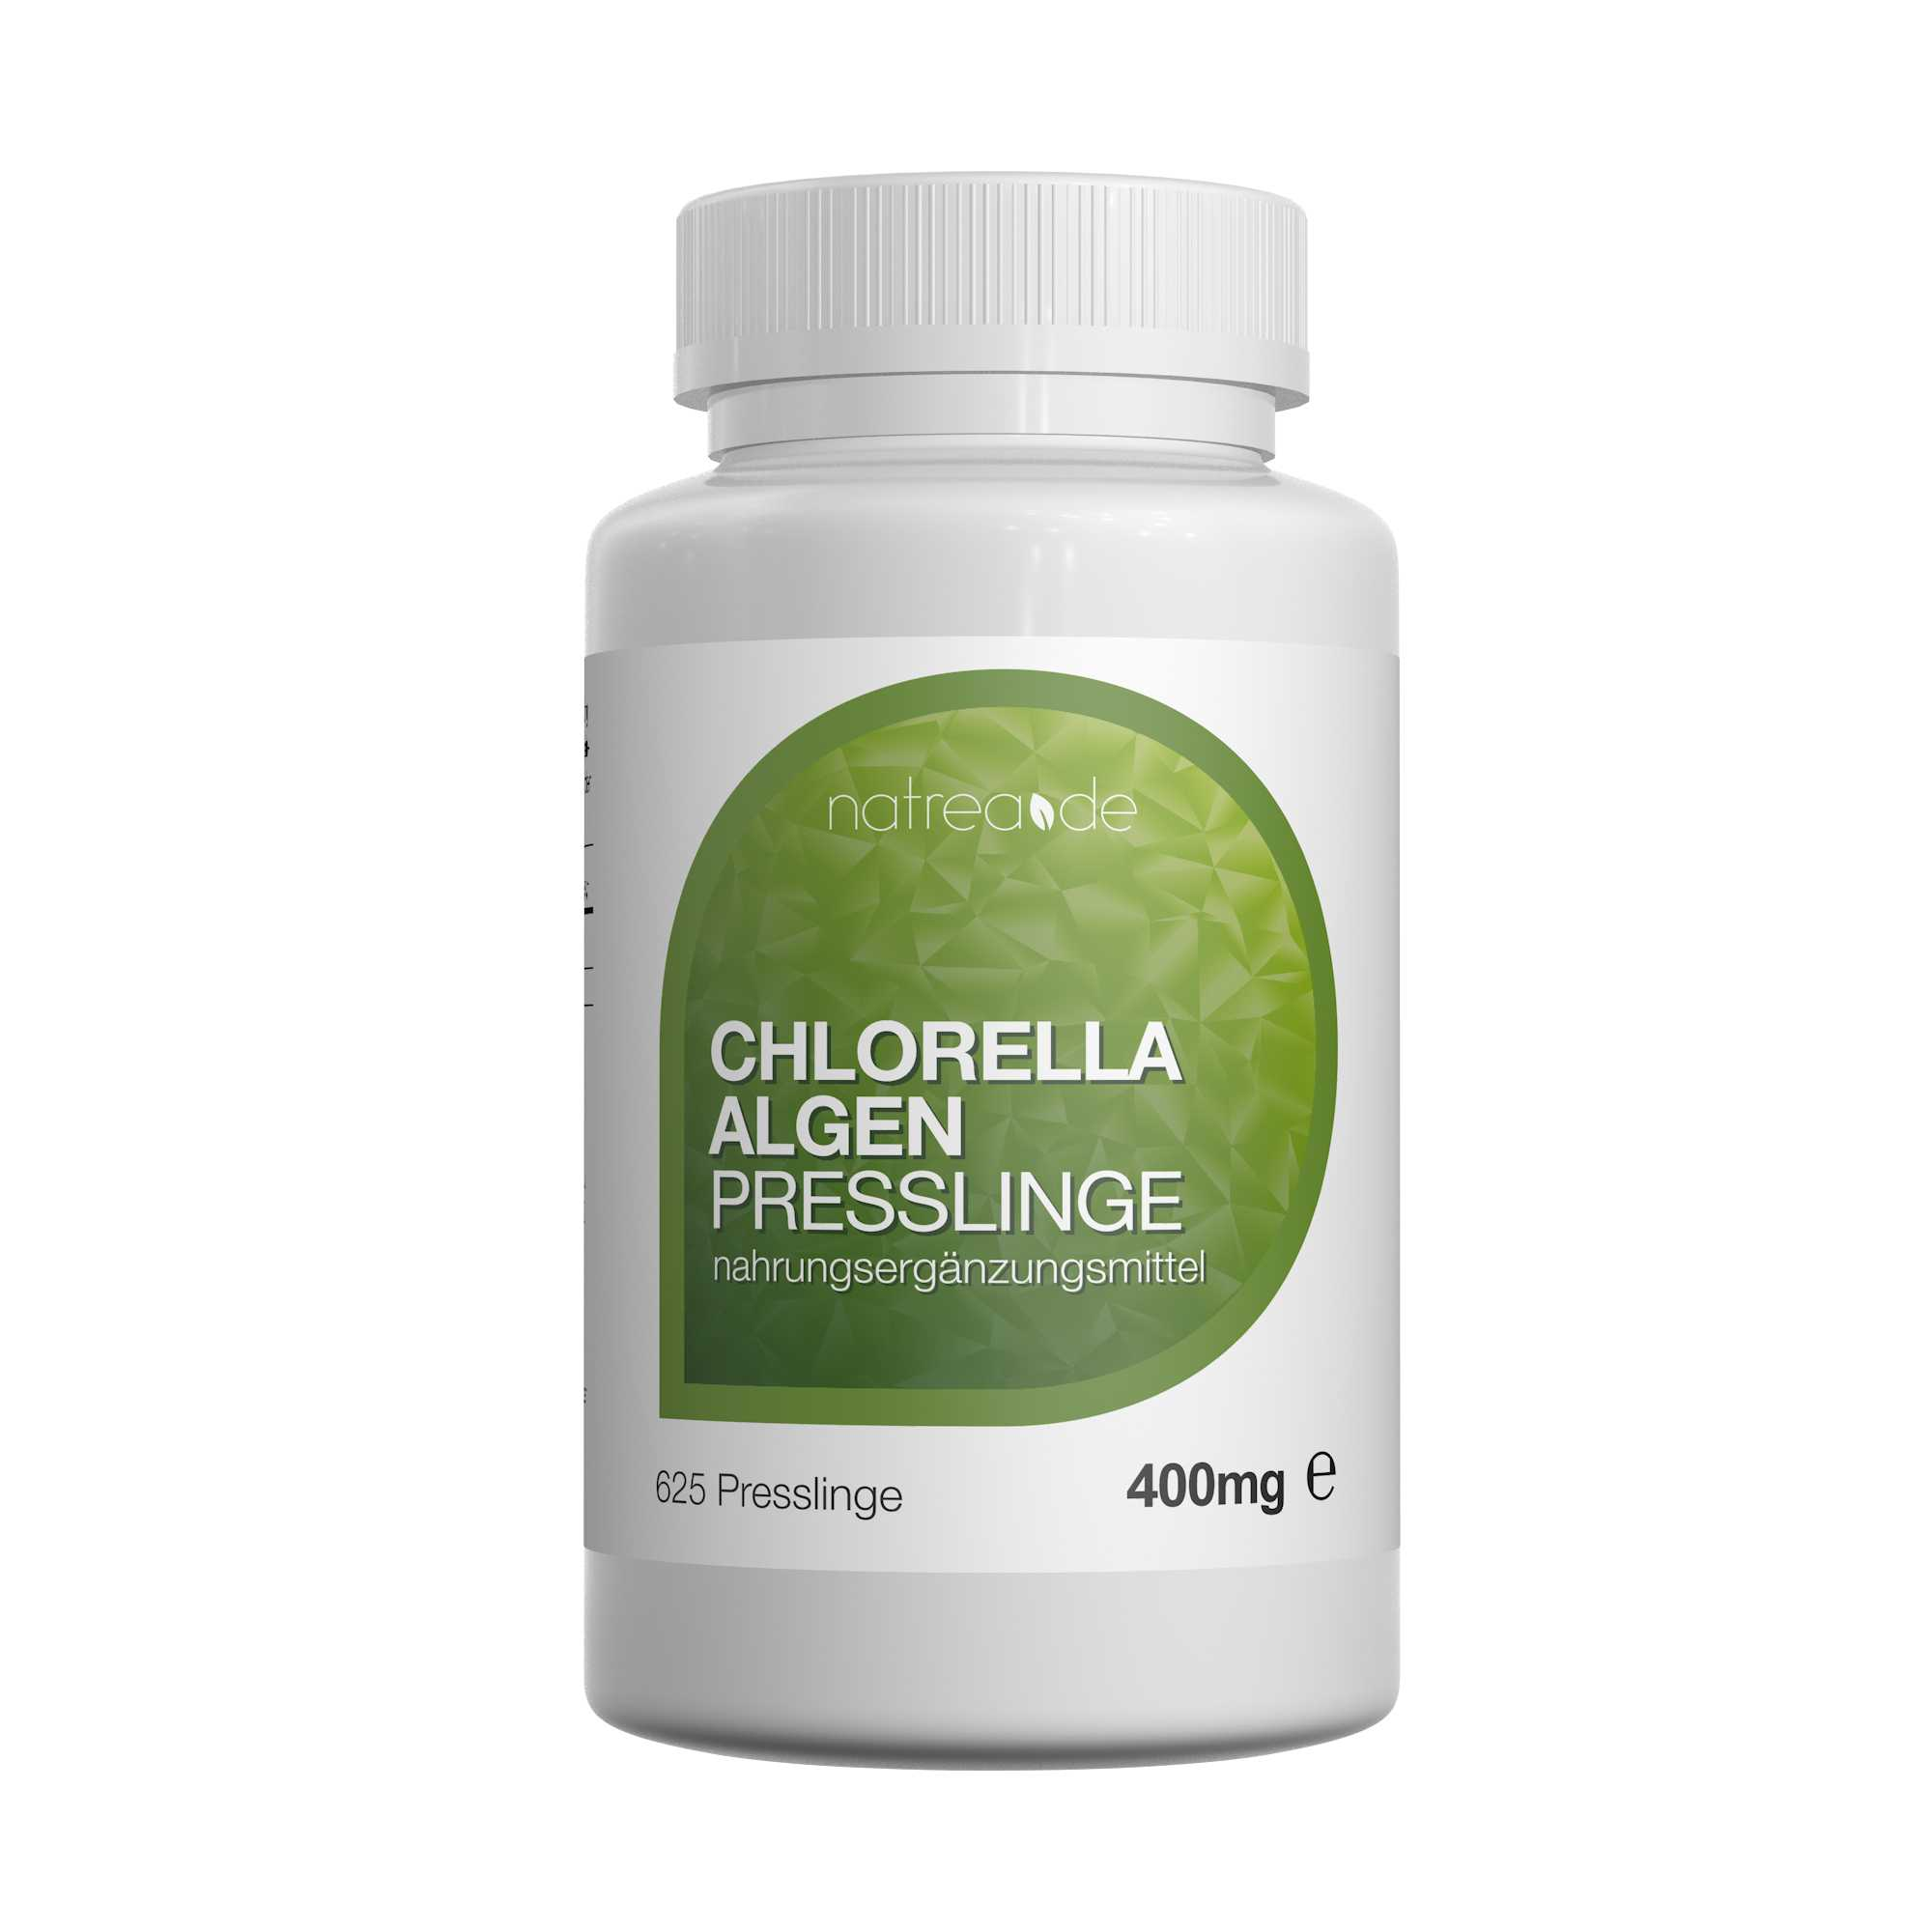 chlorella als kapseln tabletten kaufen. Black Bedroom Furniture Sets. Home Design Ideas